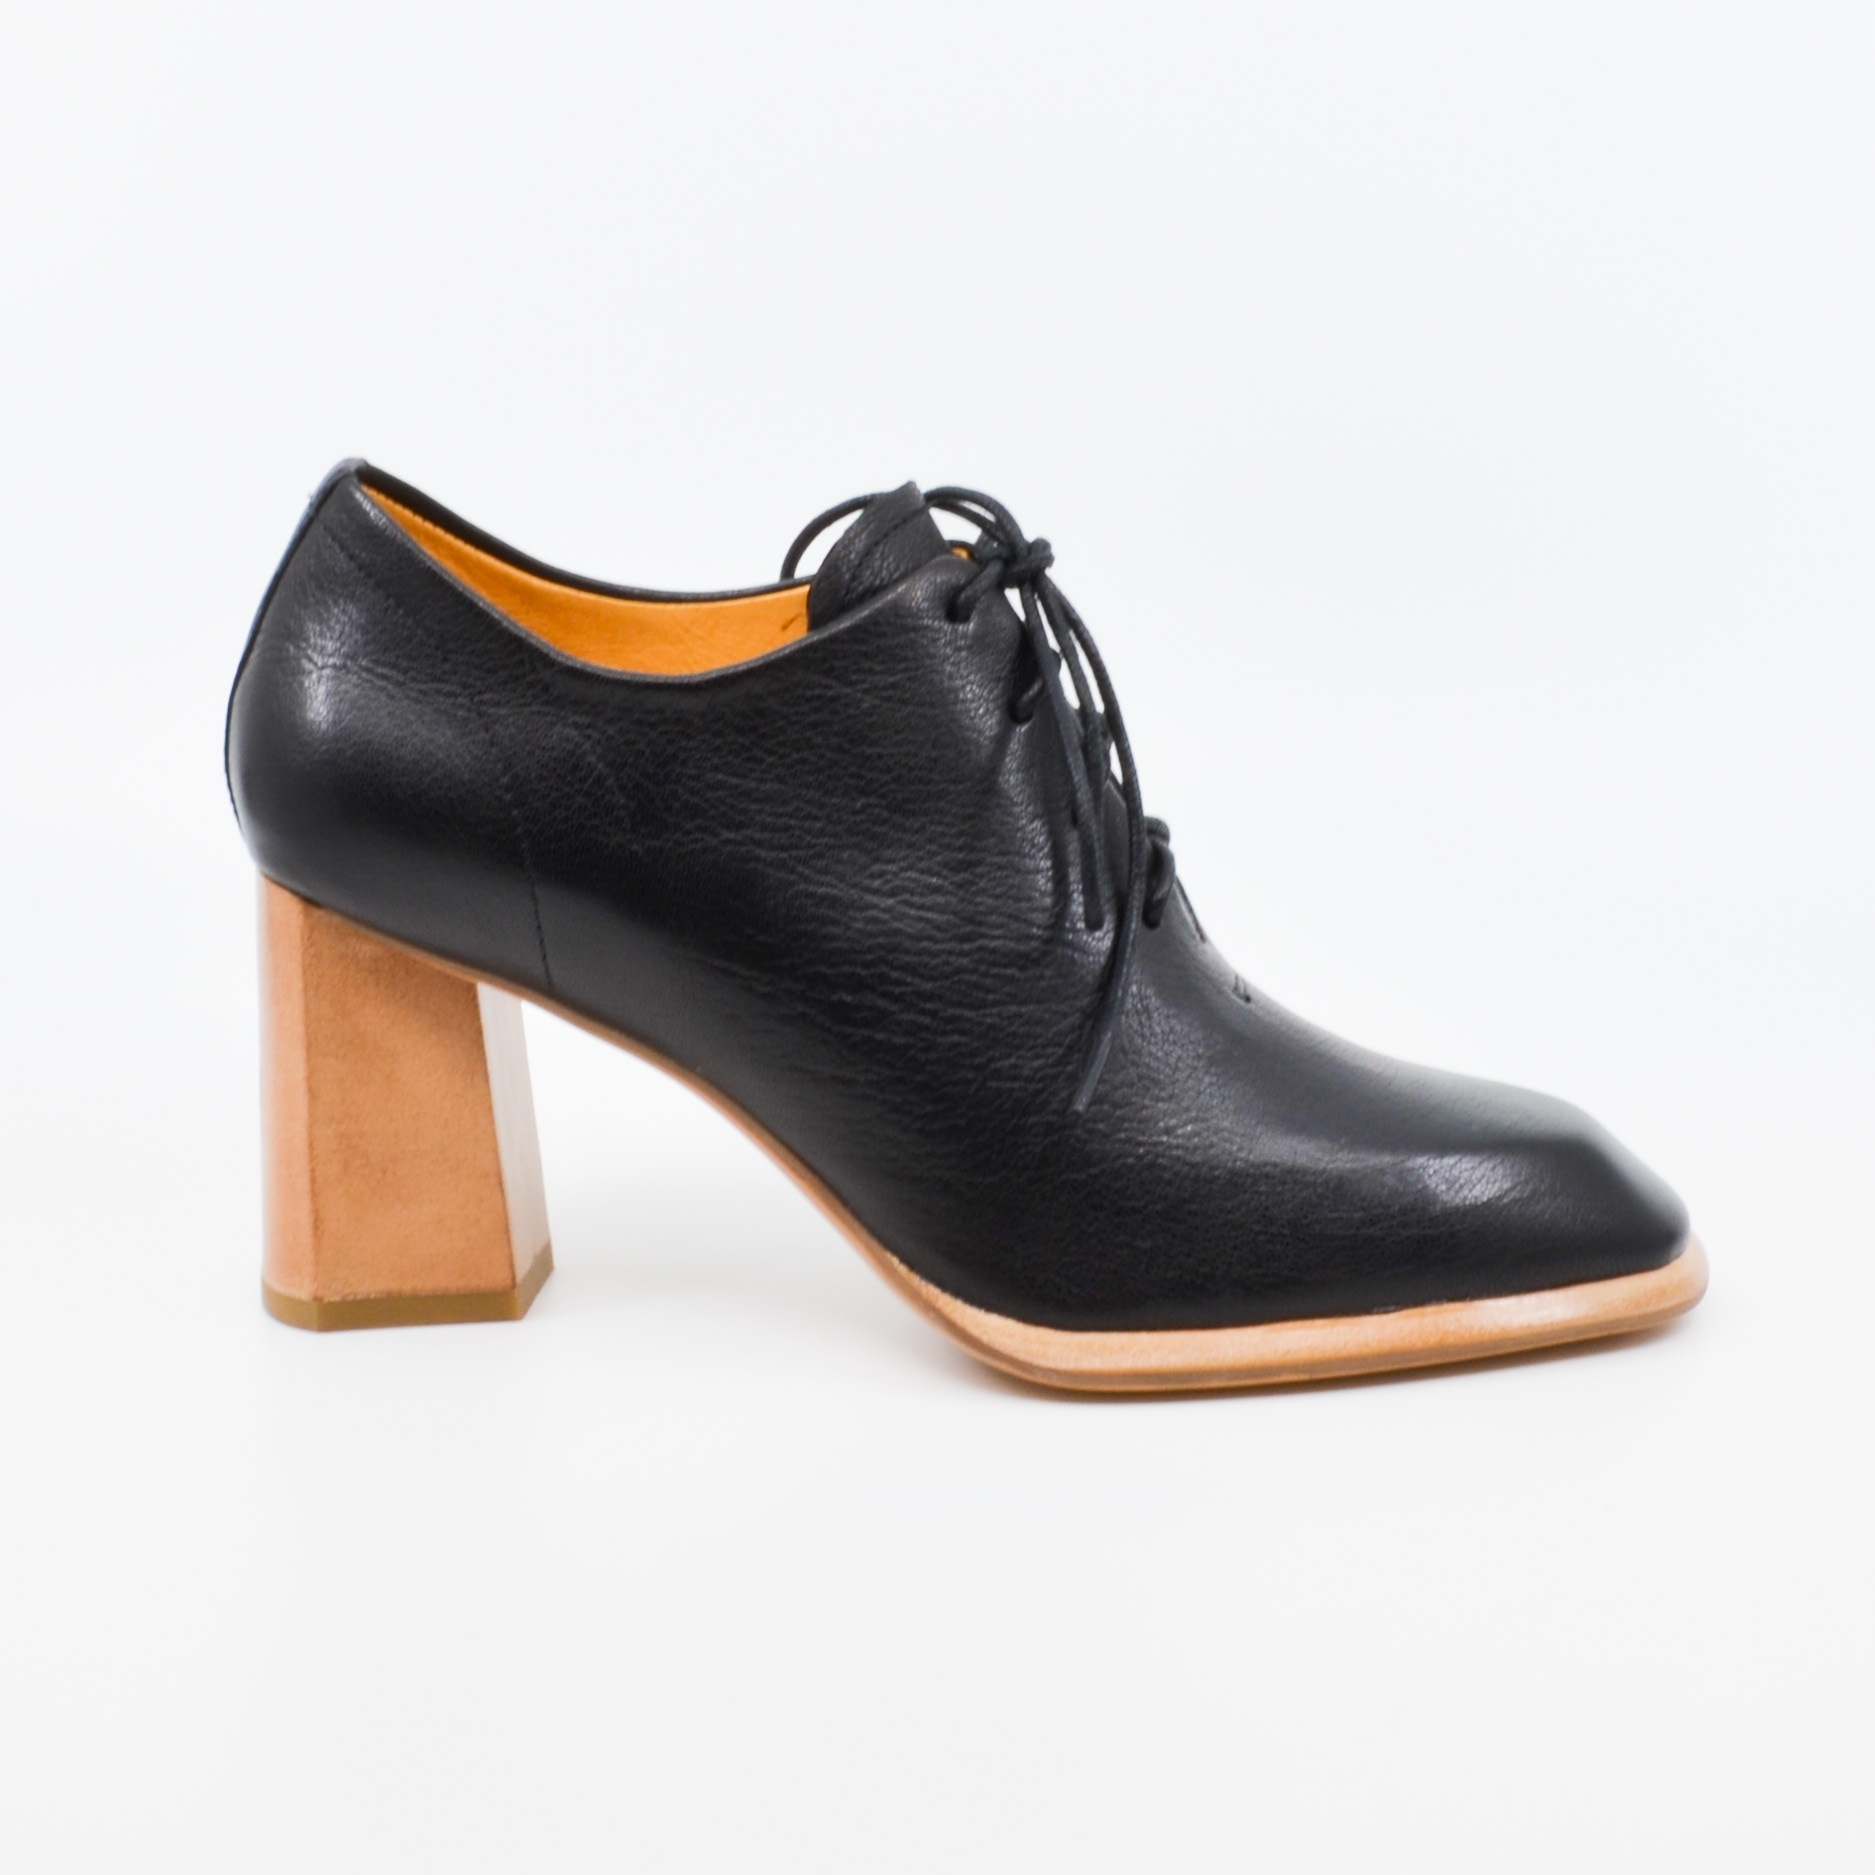 ca9b2bc2b Neo X CASSIE black - Women's Footwear Online | European Brands | The House  of Shoes